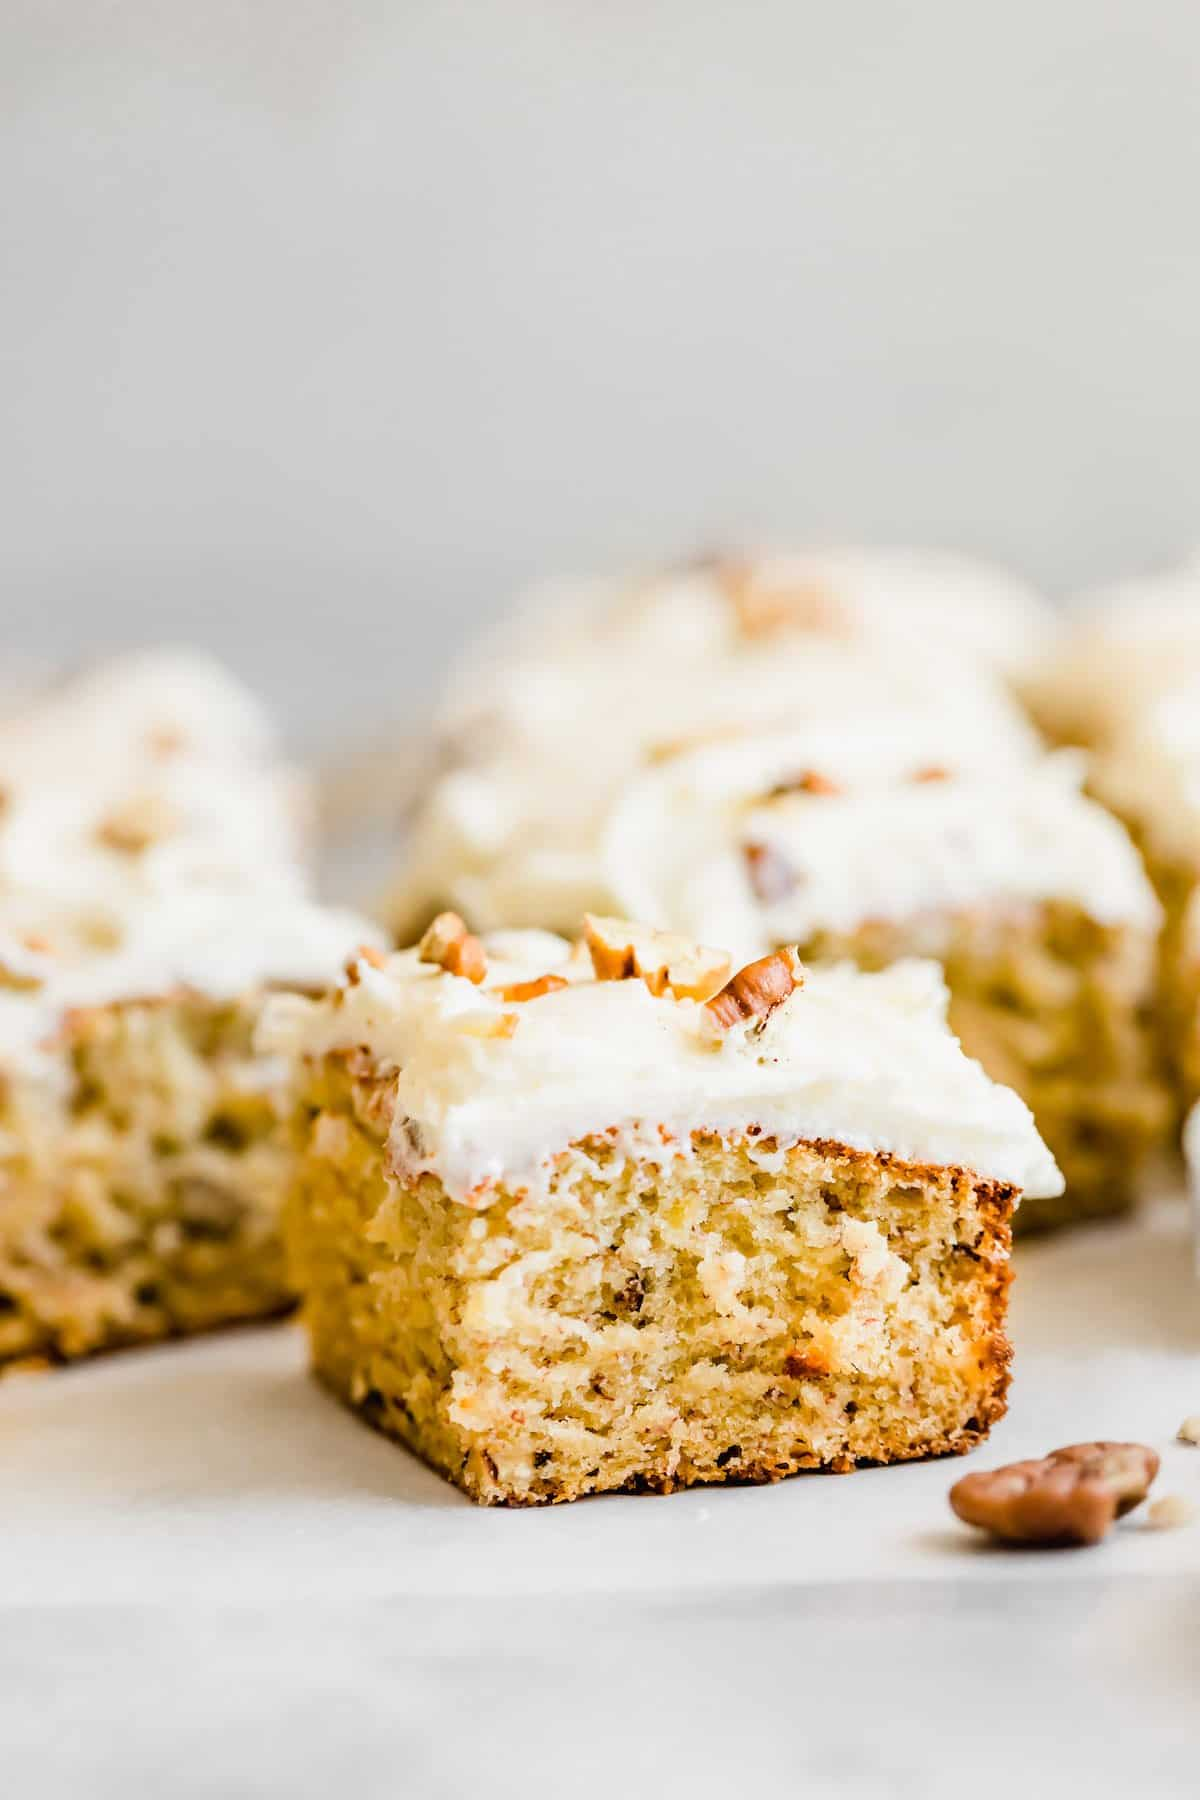 Slice of banana cake with chopped nuts.